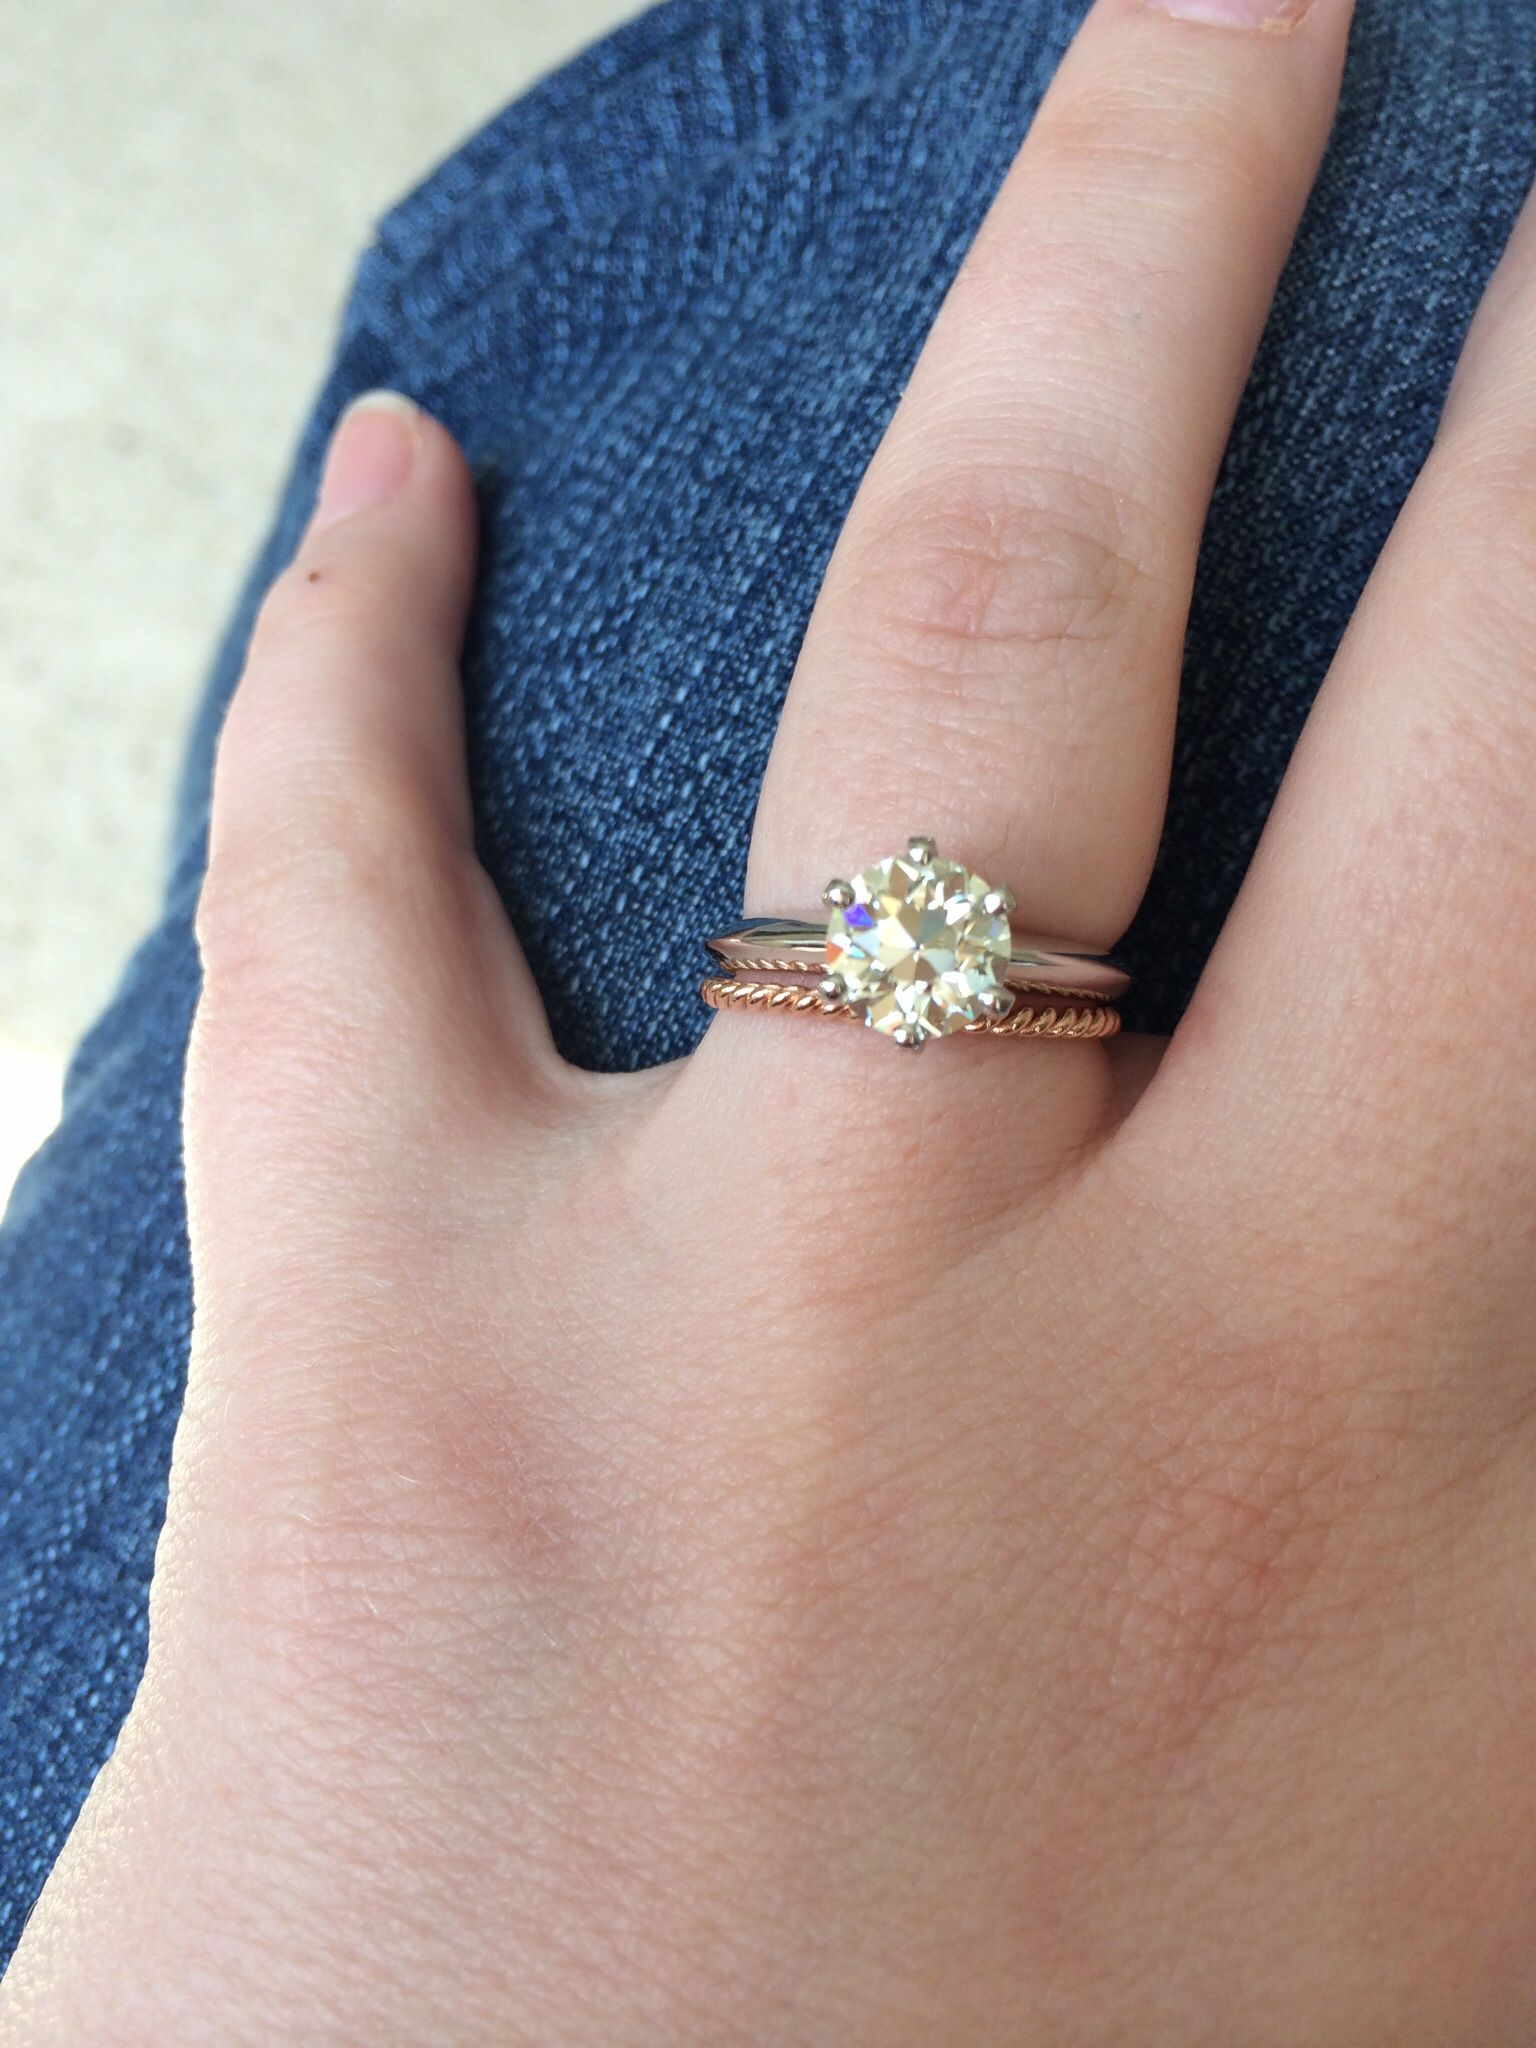 Simple engagement ring, braided band.